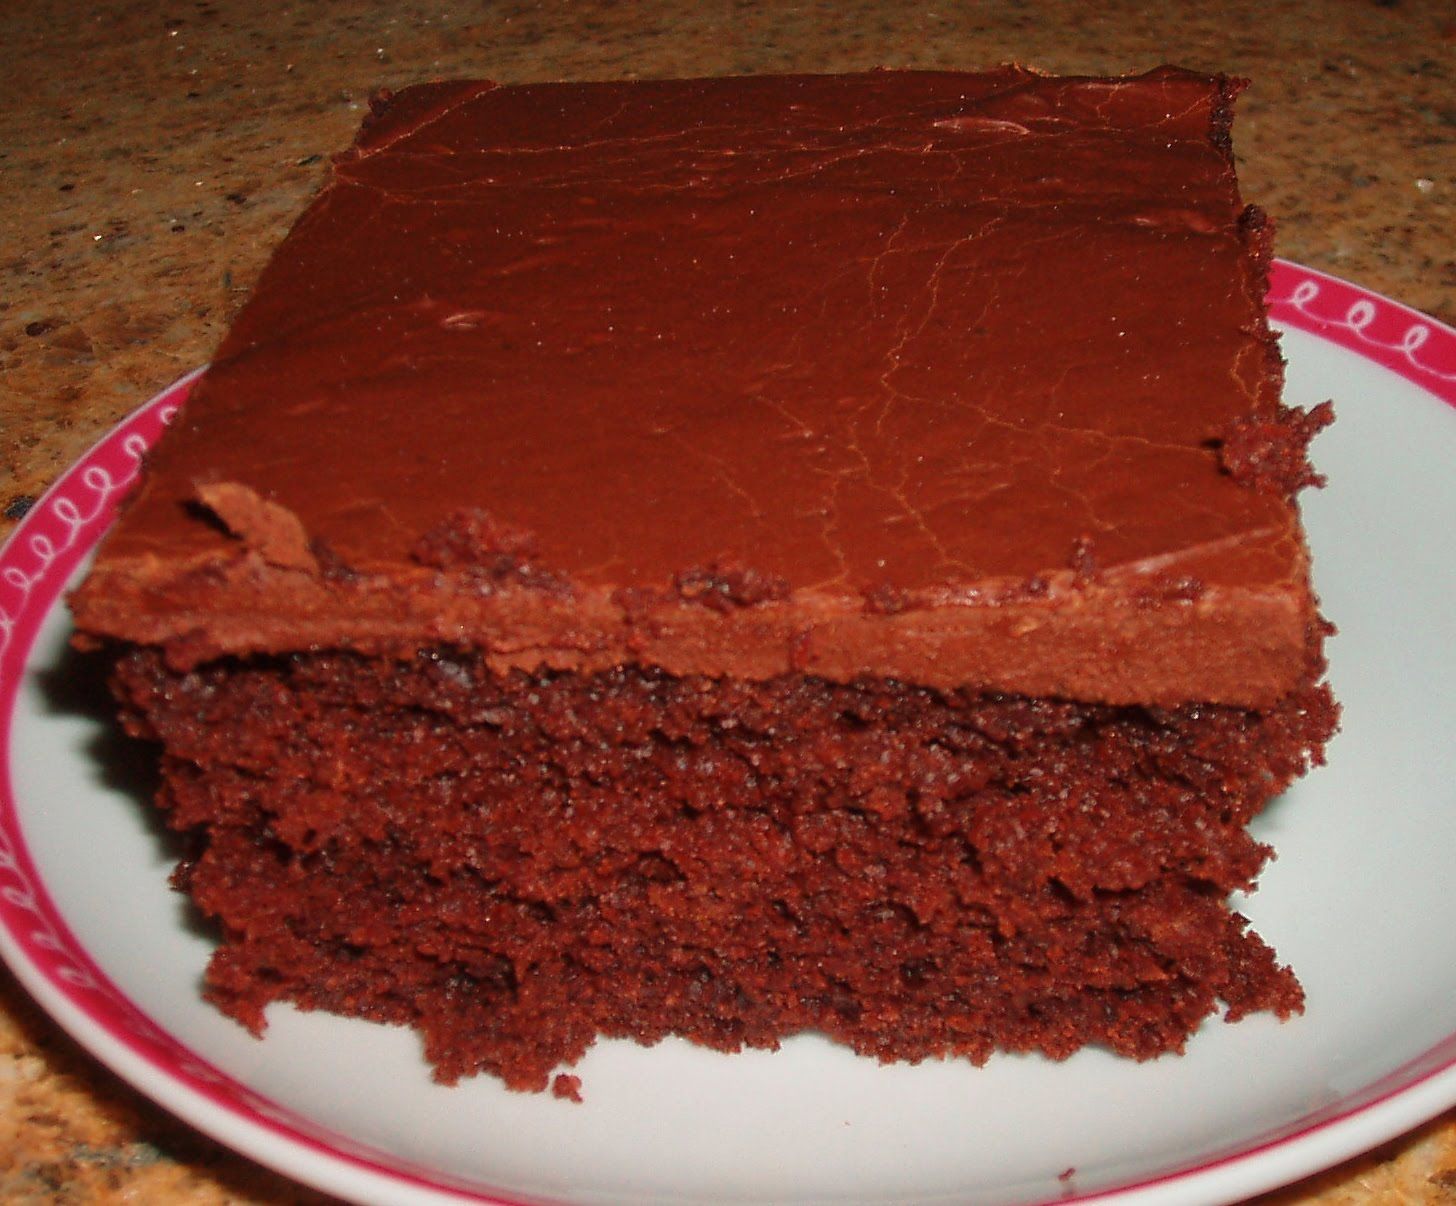 The Pastry Chef's Baking: Hershey's Old-Fashioned Chocolate Cake